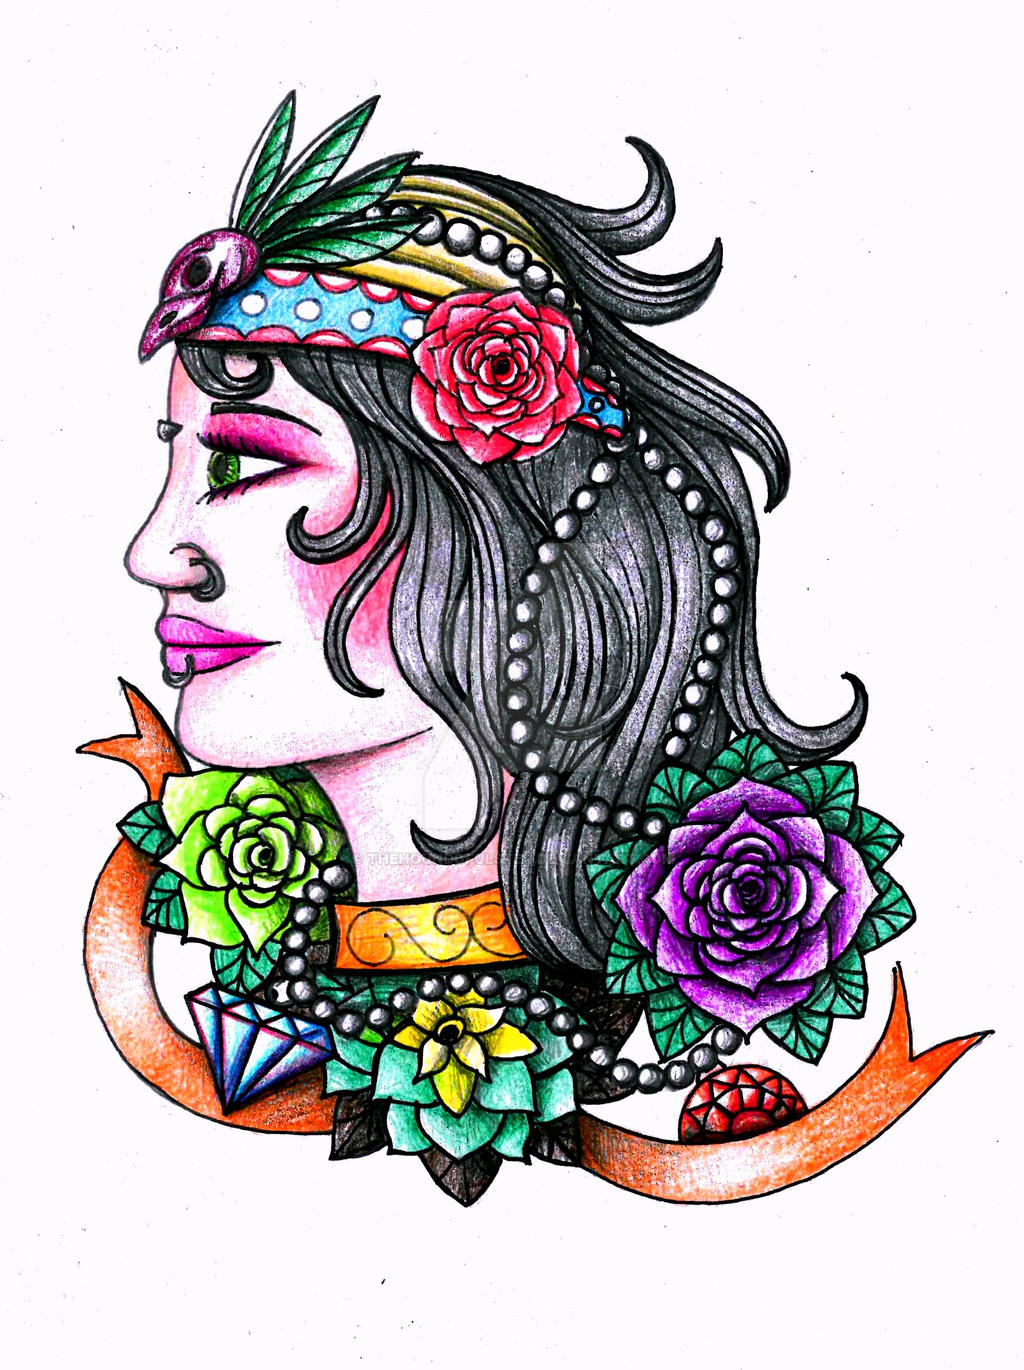 Tattoo pin up girls designs - Pin Updoll 10 4 Gypsy Girl Tattoo Design By Thehoundofulster